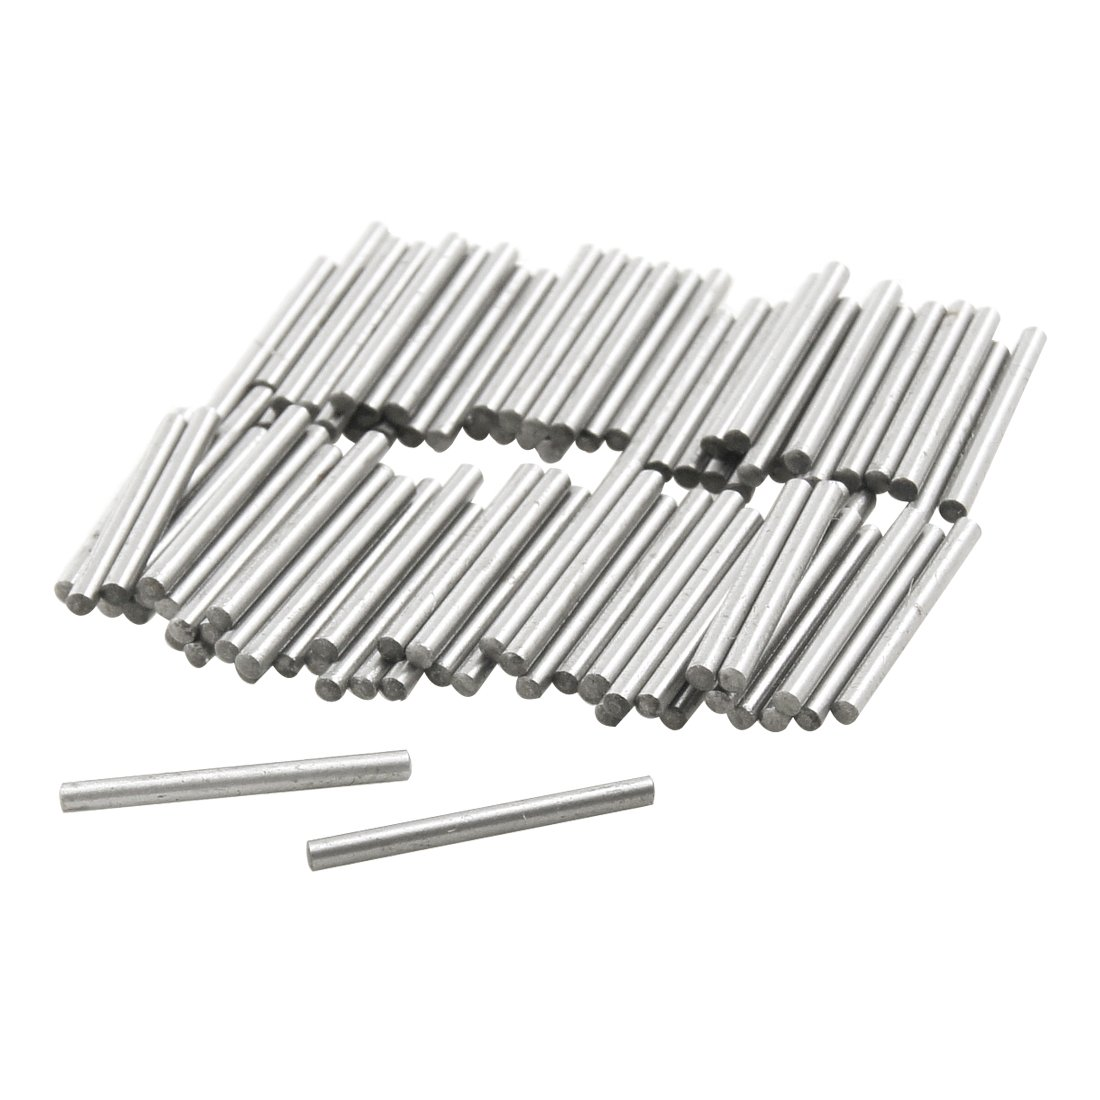 100 Pcs Stainless Steel 1.4mm x 15.8mm Dowel Pins Fasten Elements Sourcingmap a12042300ux0534